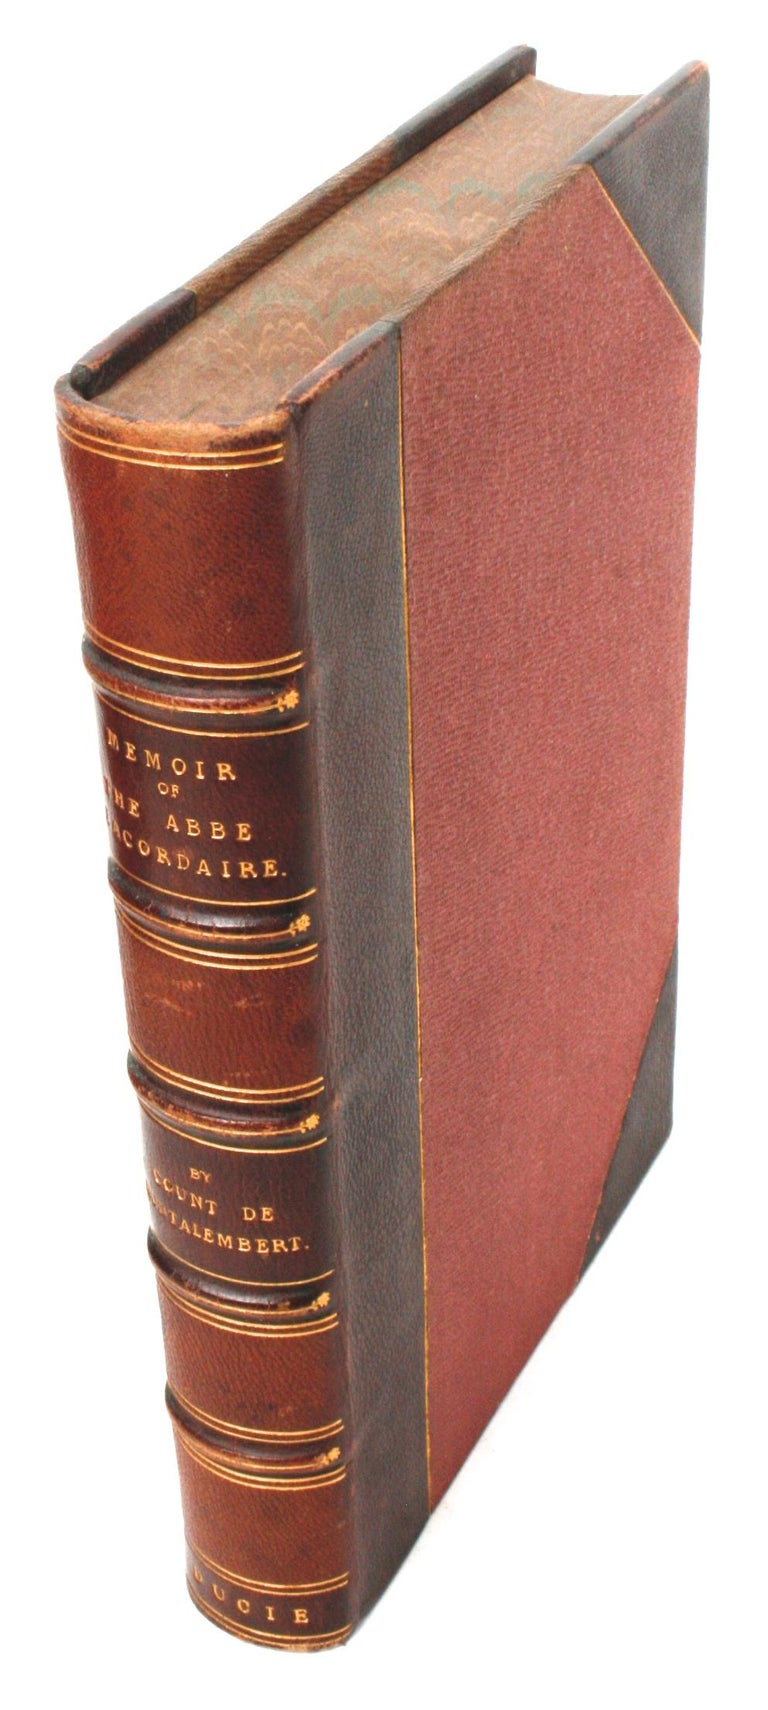 Memoir of the Abbé Lacordaire by the Count De Montalembert, First Edition In Good Condition For Sale In Kinderhook, NY